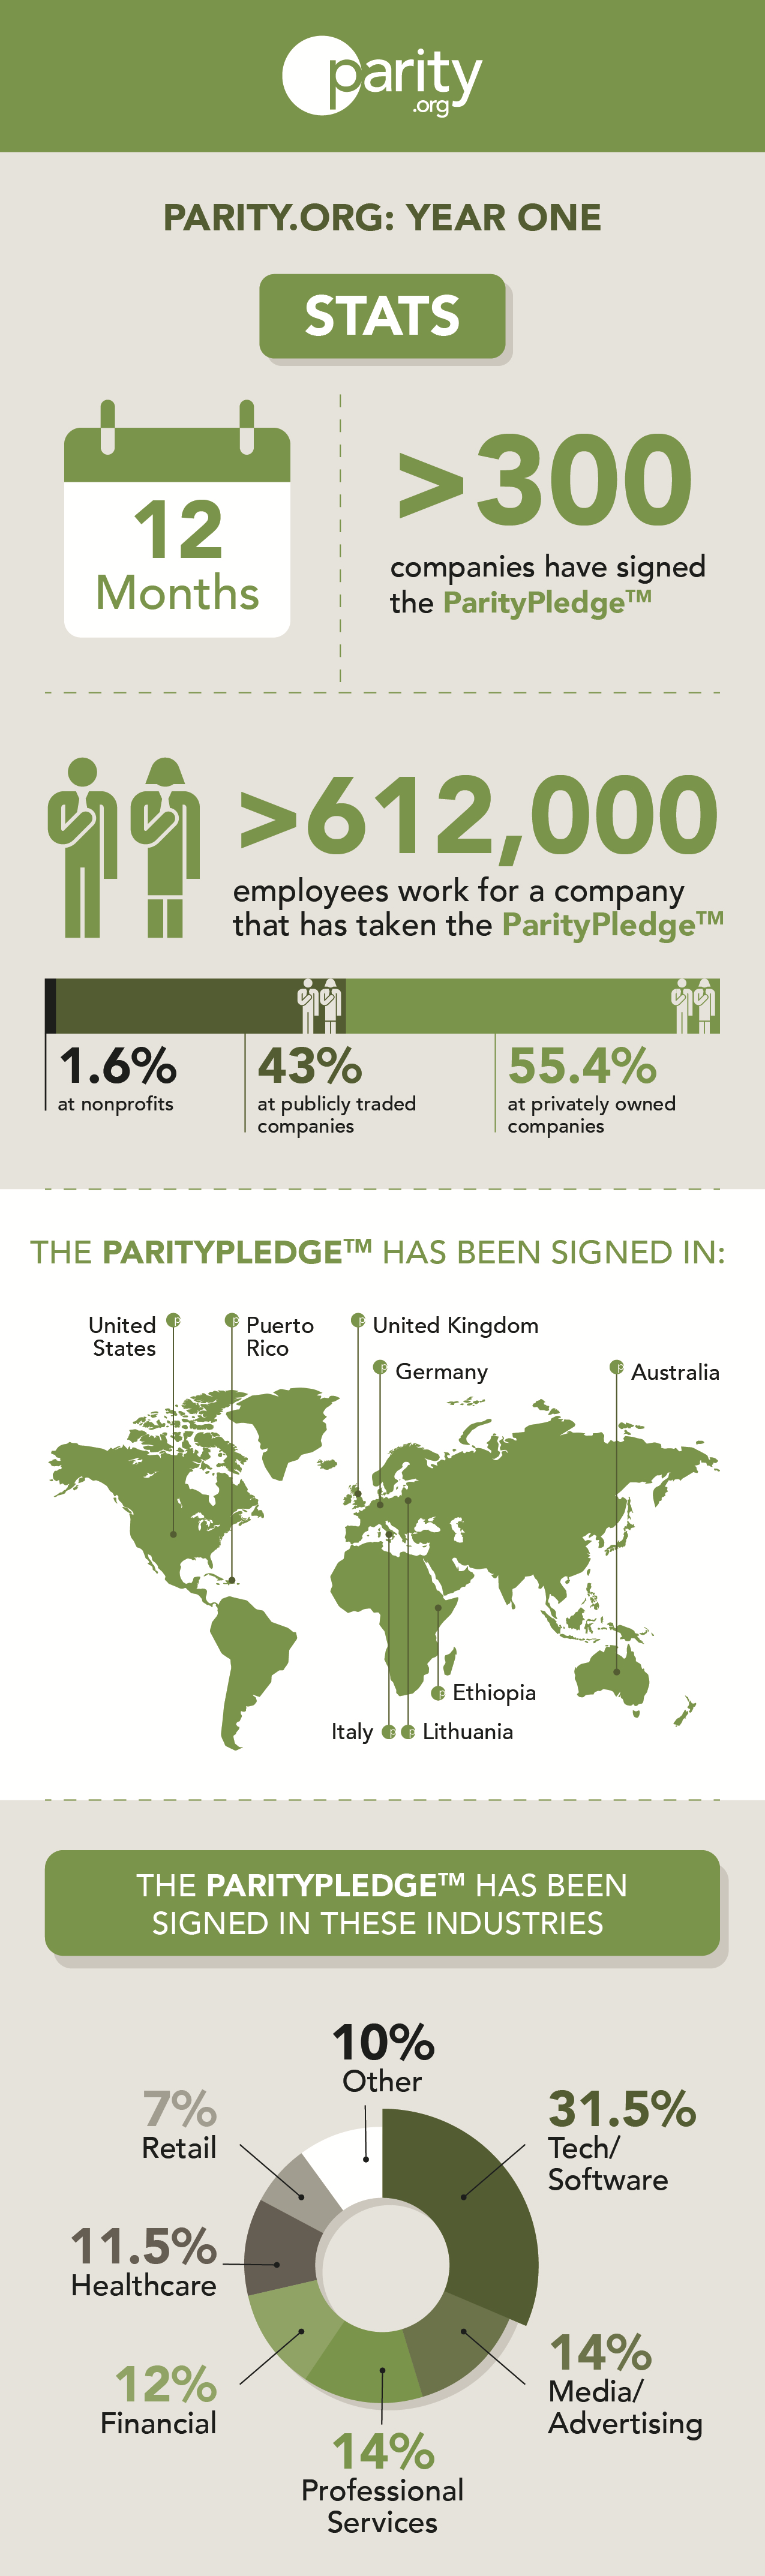 Parity.org one-year milestones and stats as an infographic